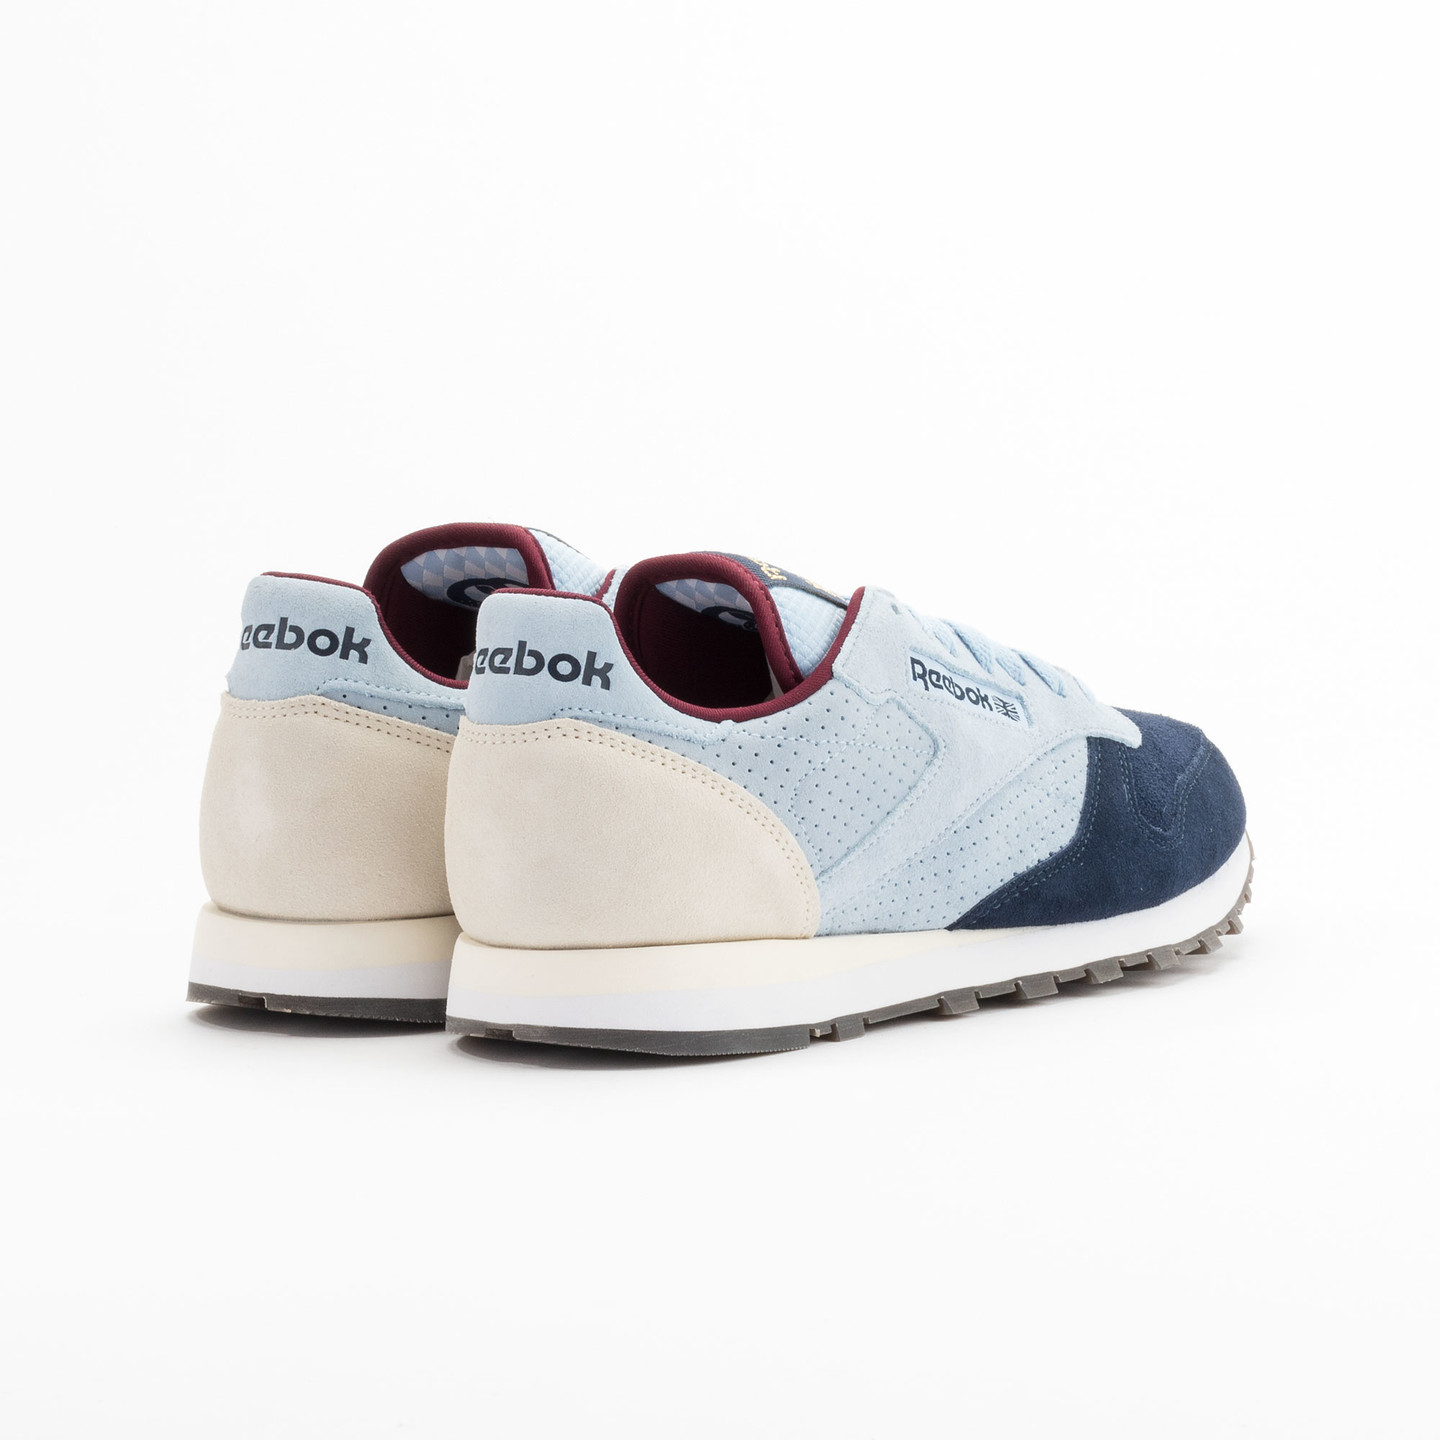 Reebok Classic Leather Int Navy / Light Blue / Sand V66829-45